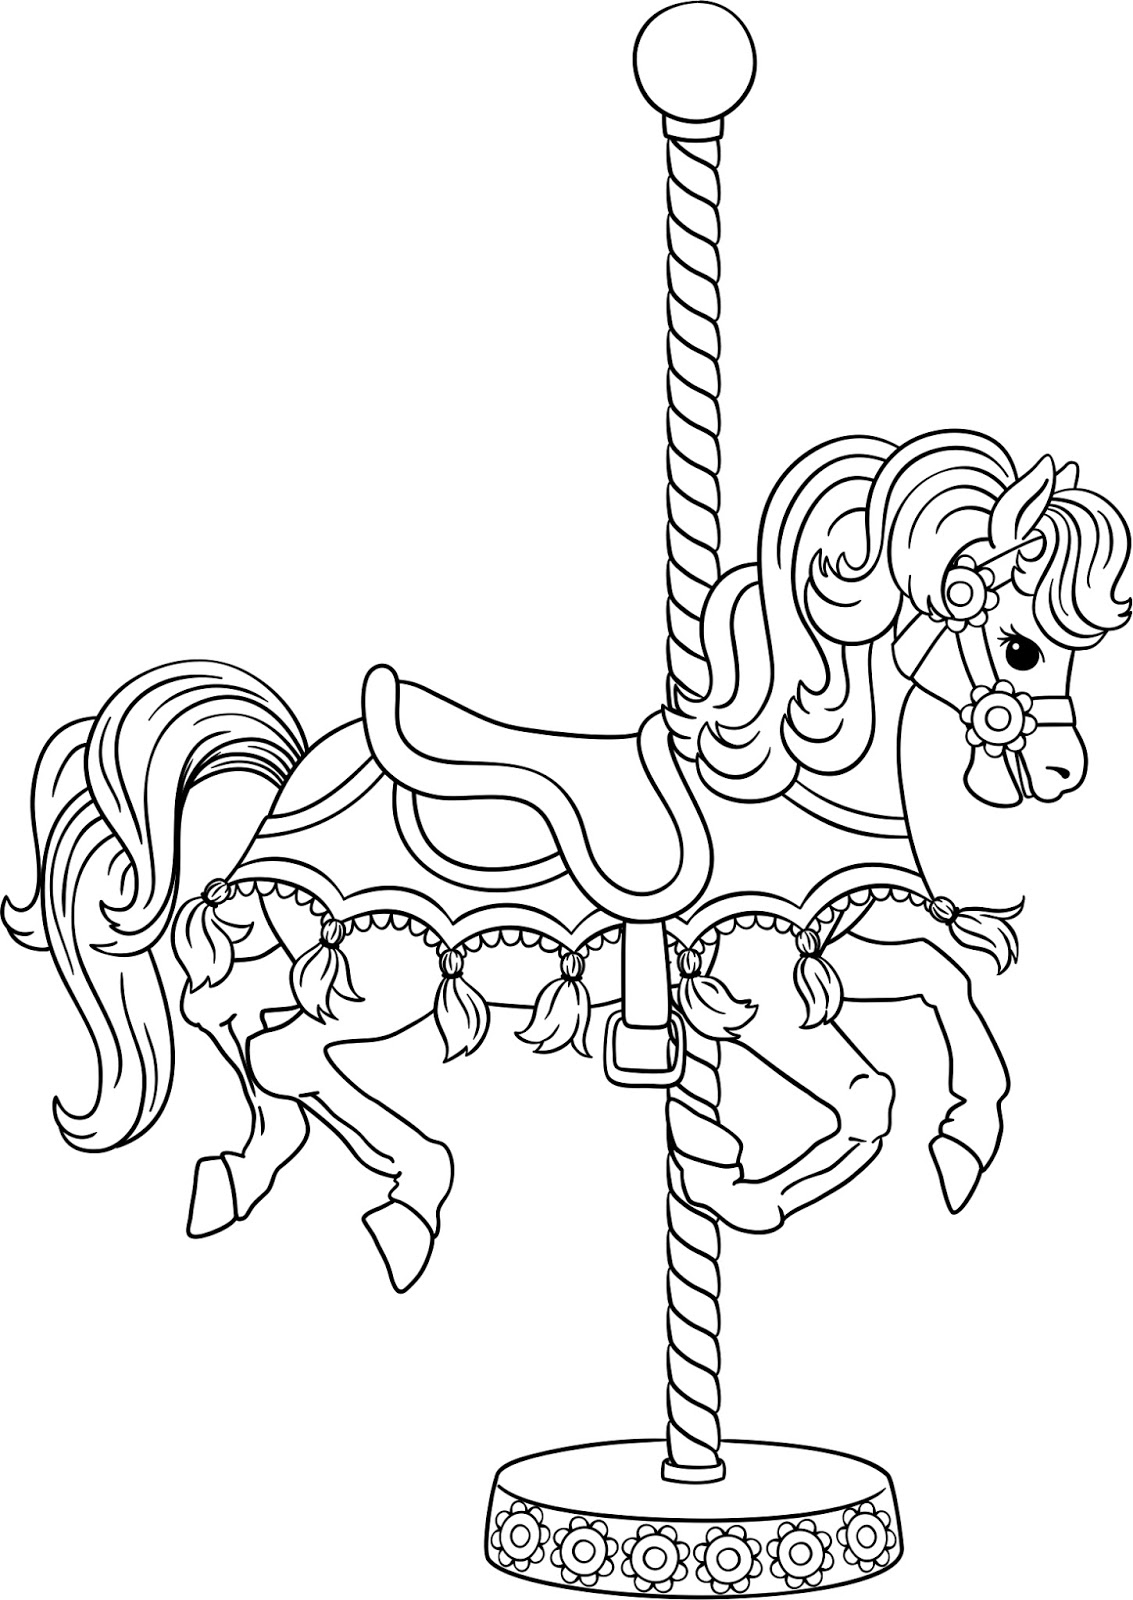 Beccy 39 s place july challenge for Carousel horse coloring page